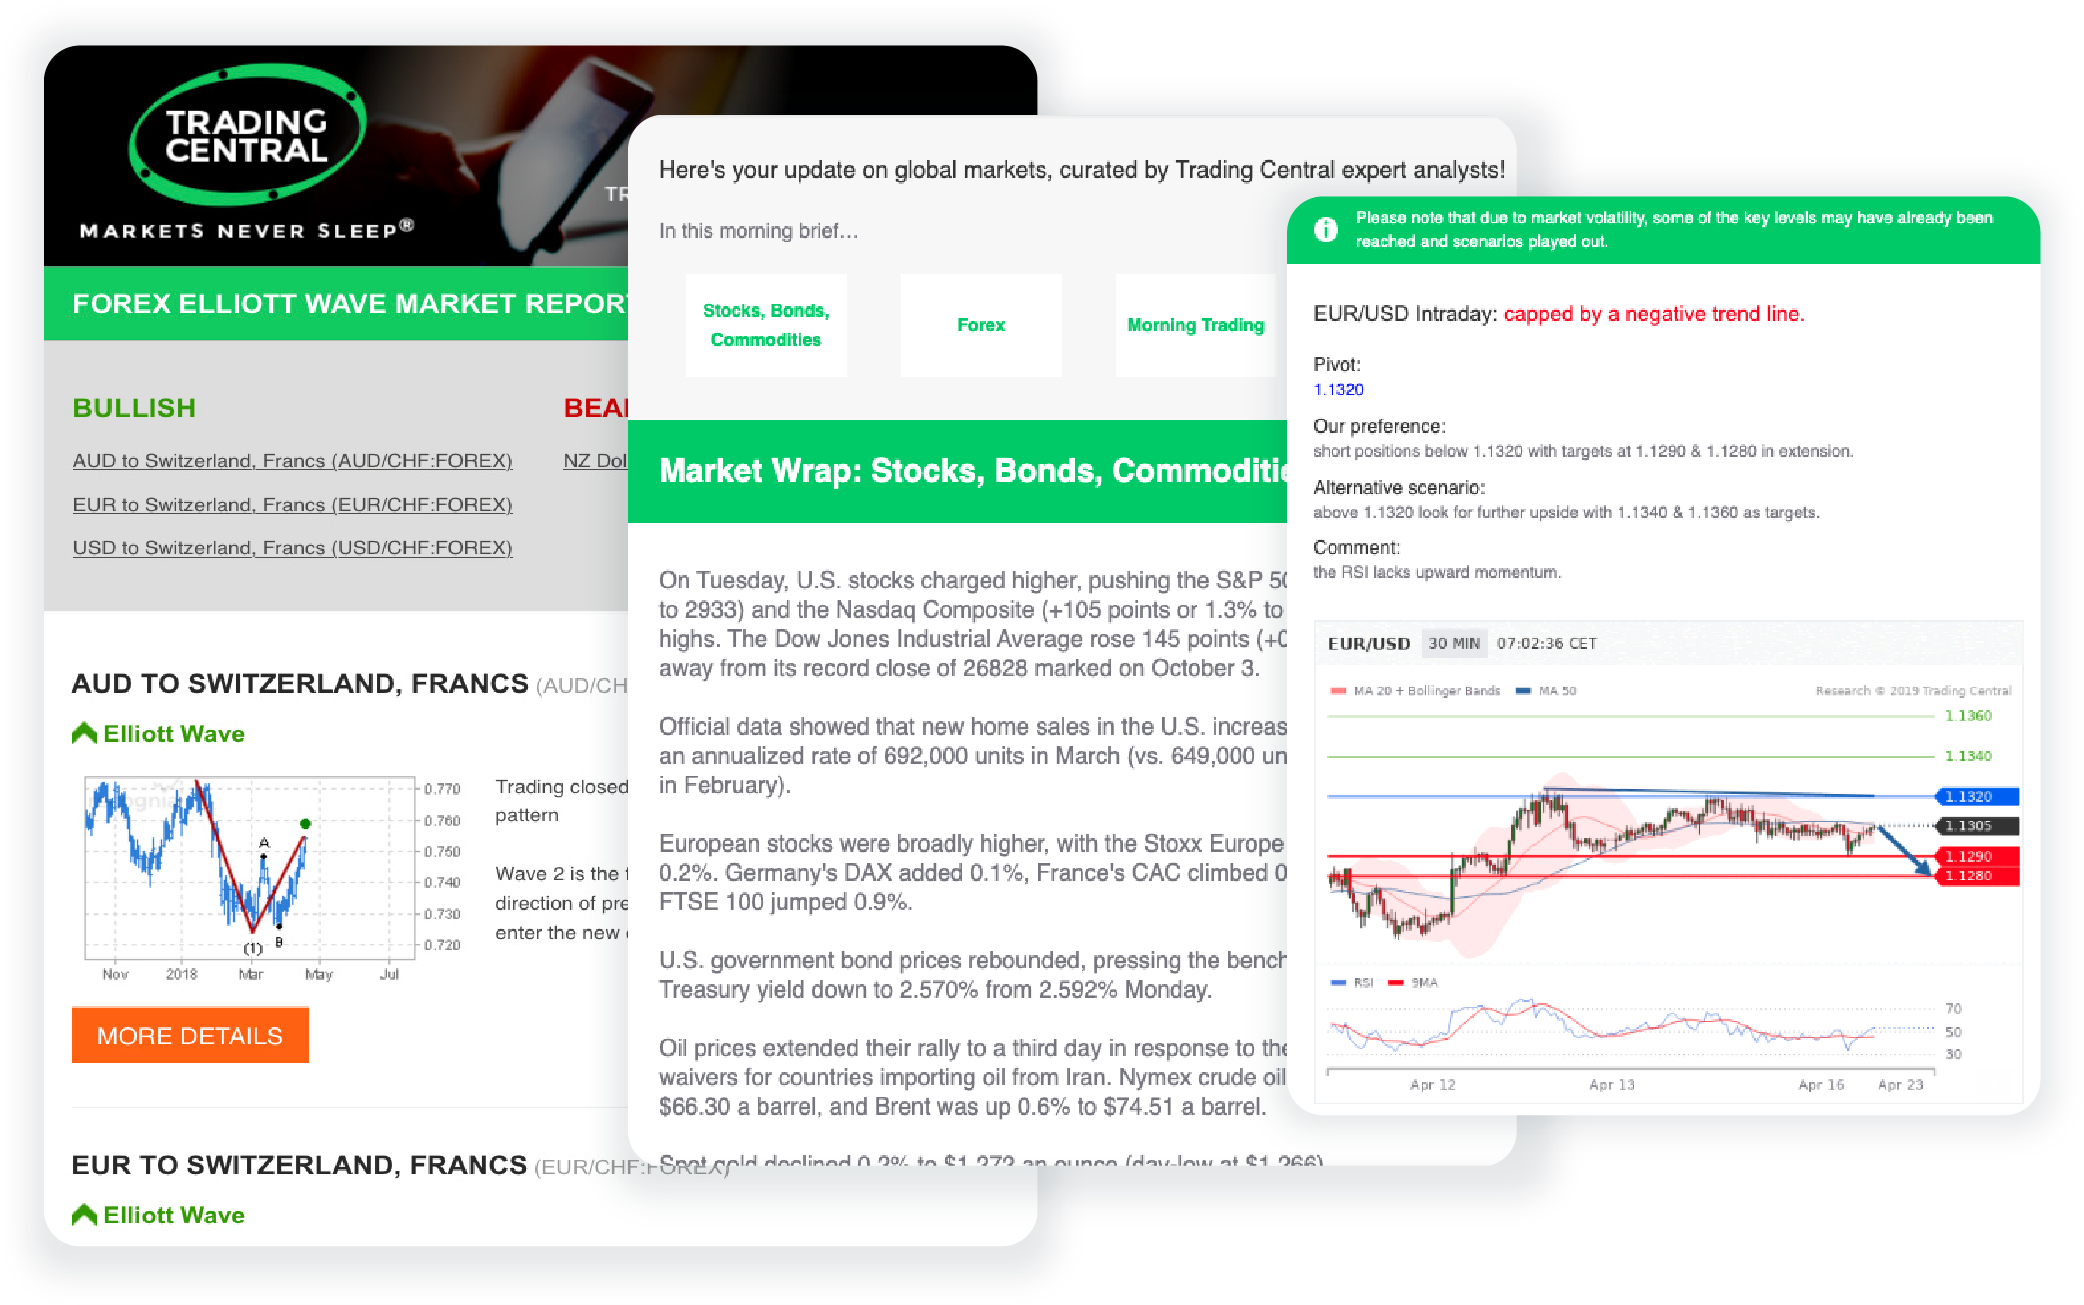 Newsletter mockup - technical chart for FX pairs and more!